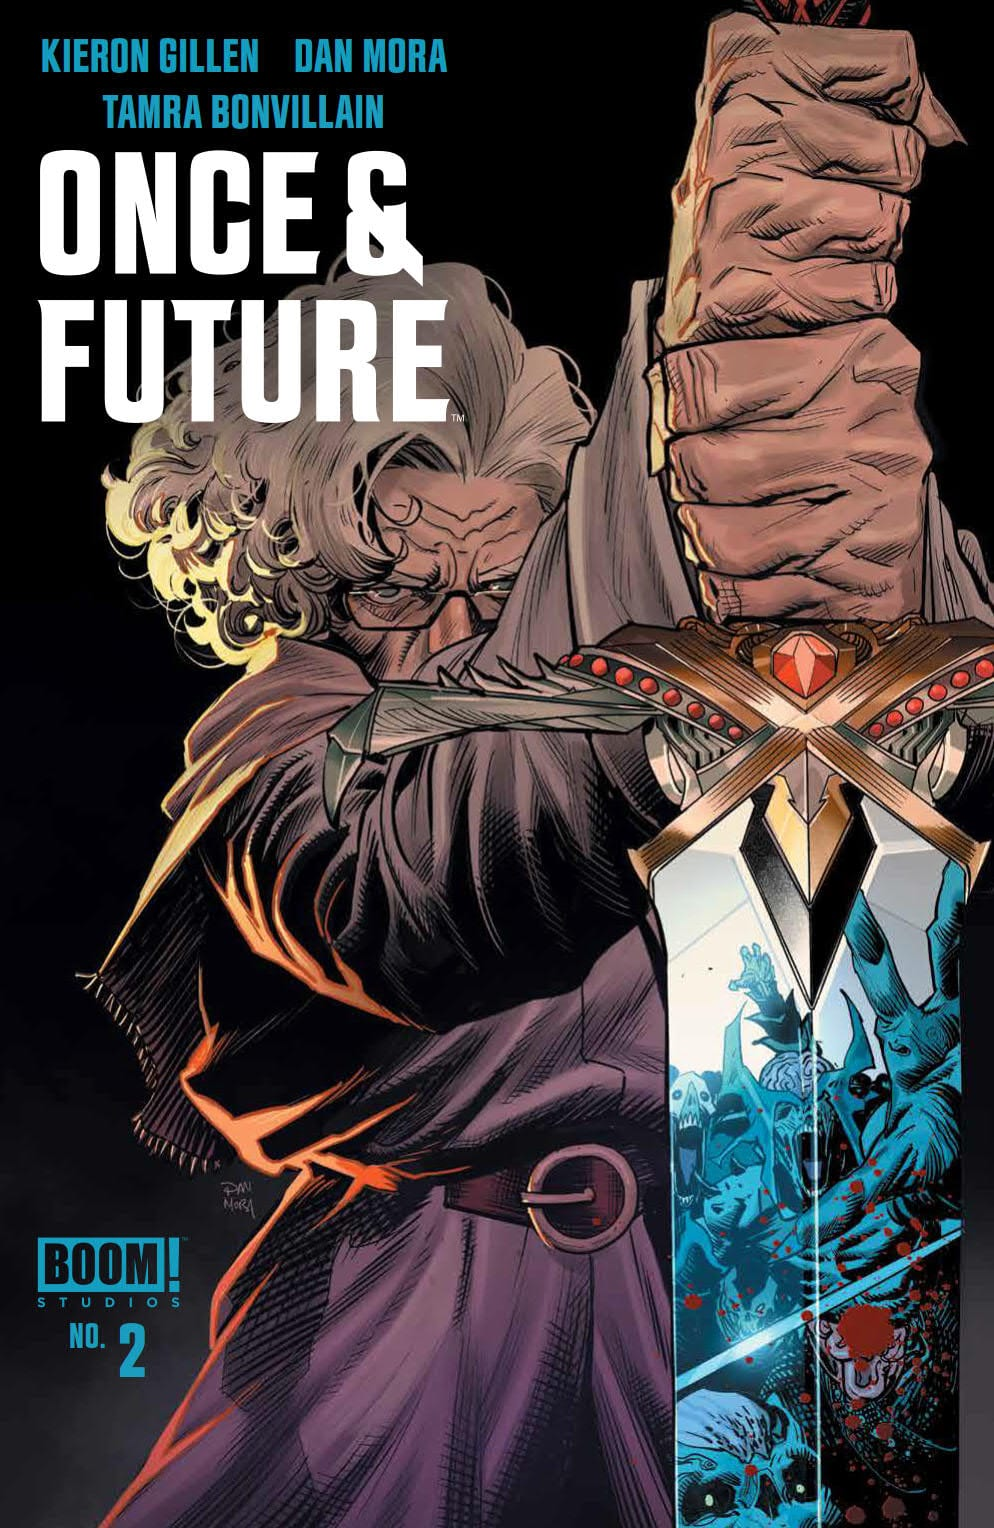 A Dark King Rises In ONCE & FUTURE #2 1